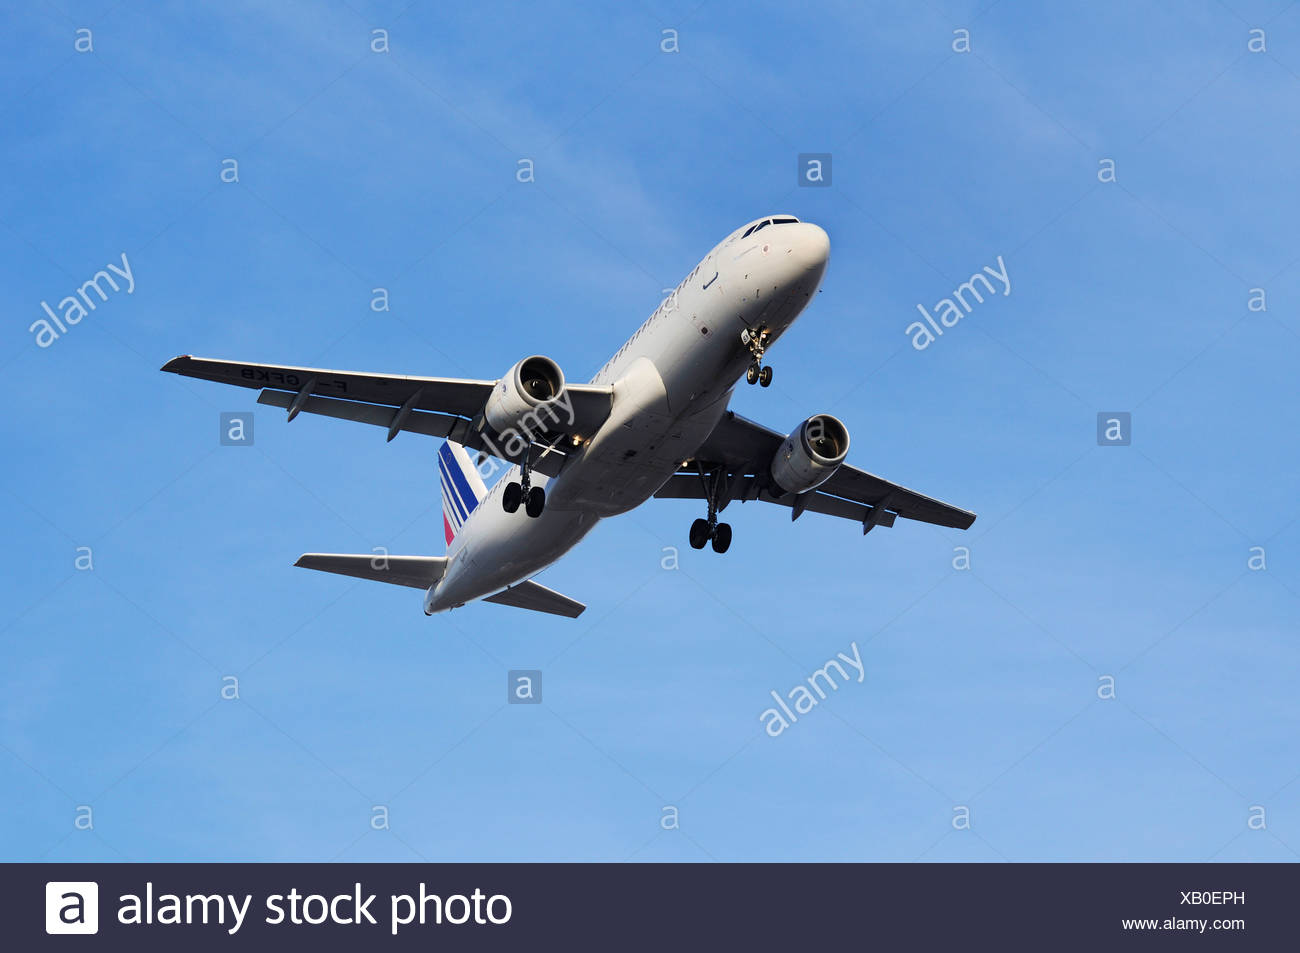 Commercial aircraft, Air France KLM, climbing against a light-blue sky, perspective from diagonally below - Stock Image